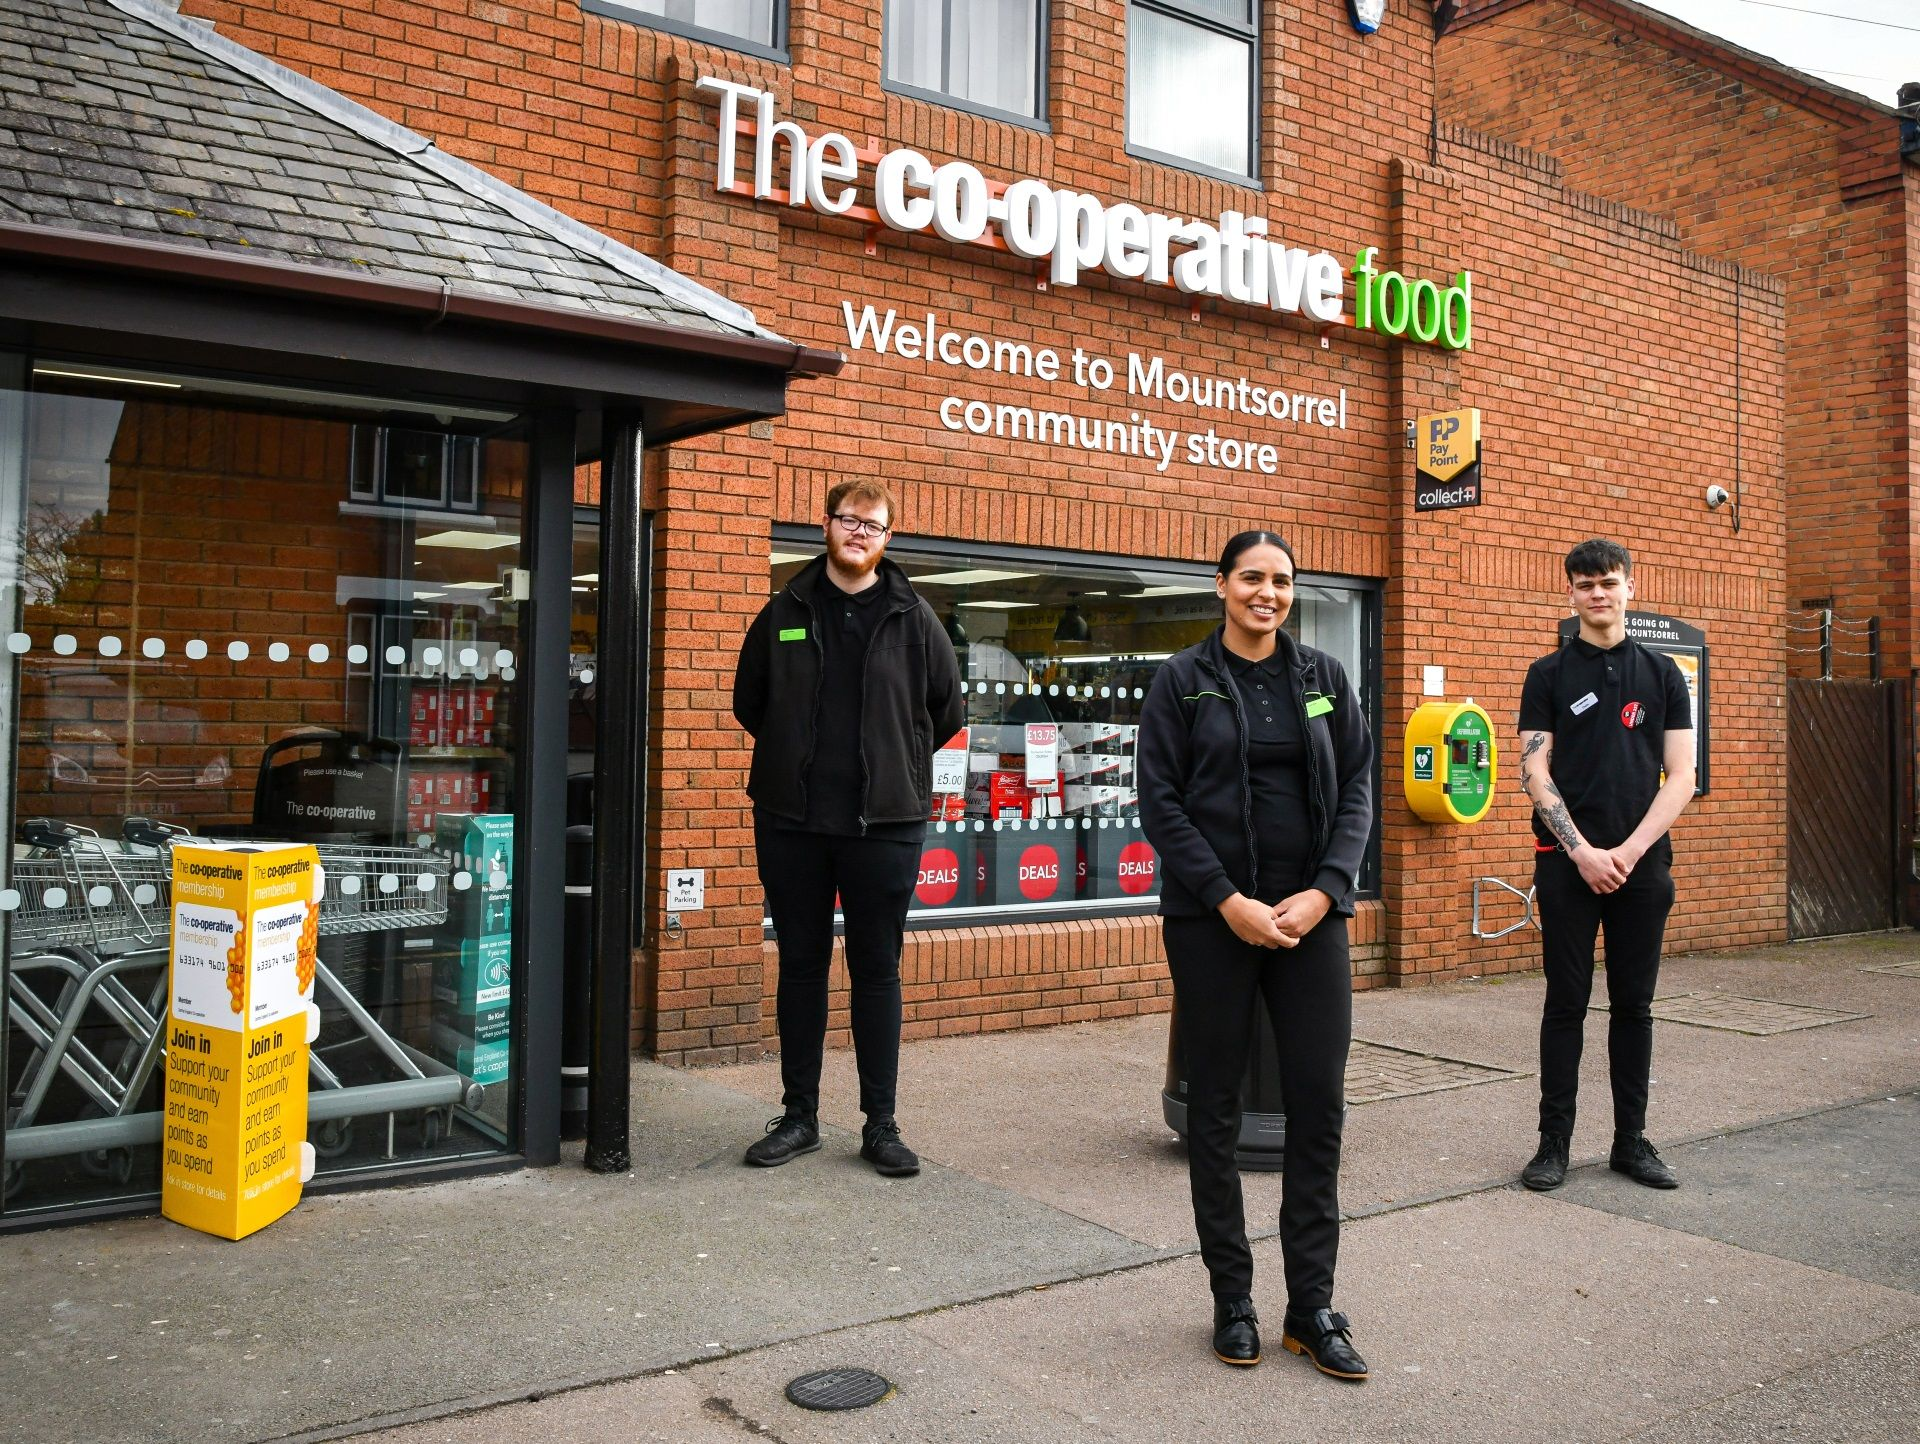 Mountsorrel food store gets fresh new look with £55k makeover